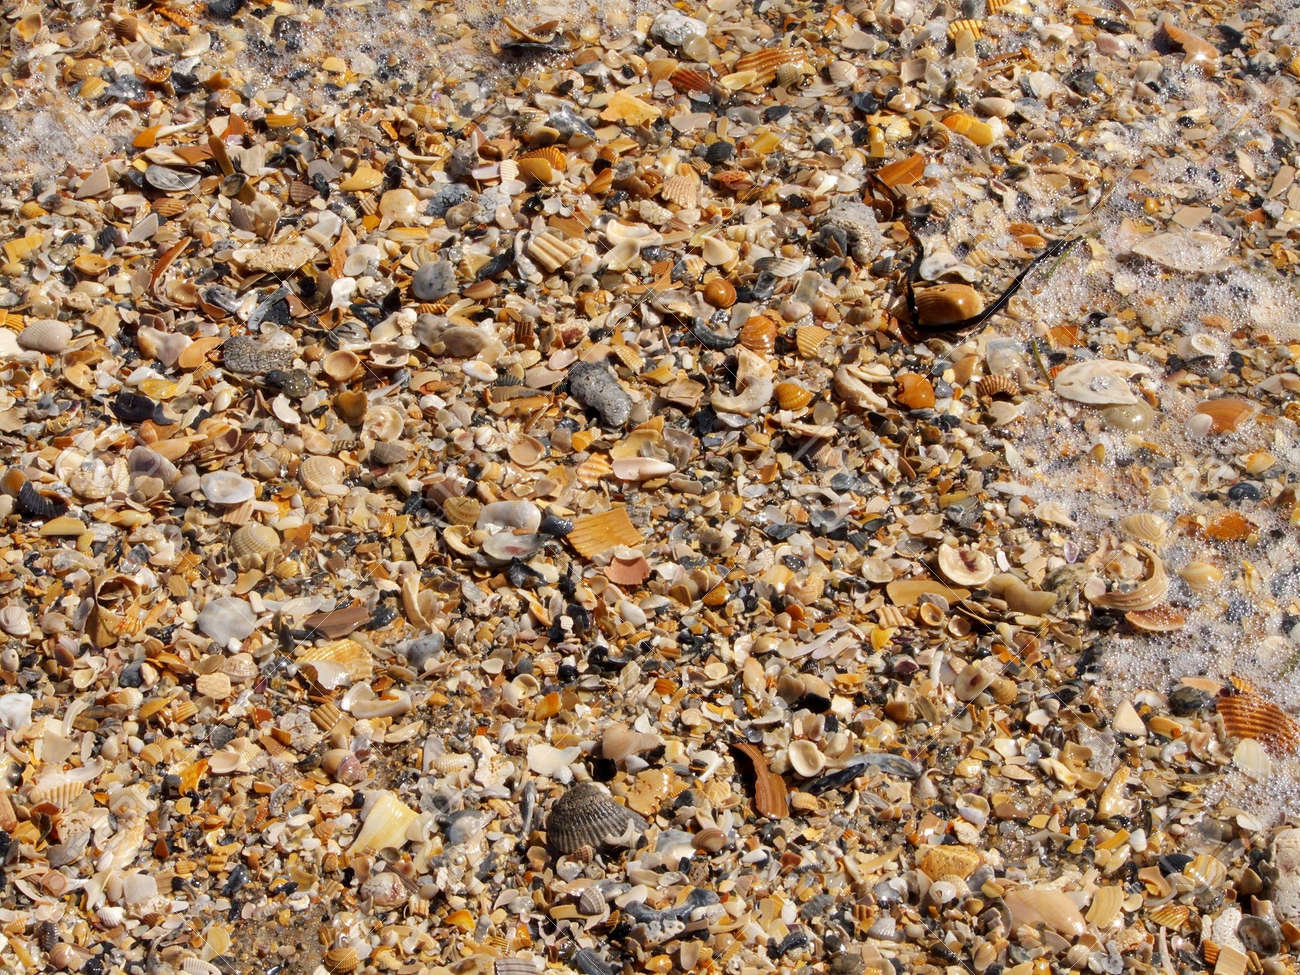 Pile of seashells of different shapes and colors washed up on St. George Island, Florida, some crushed. Scene includes foam and a piece of seaweed. Stock Photo - 6346486